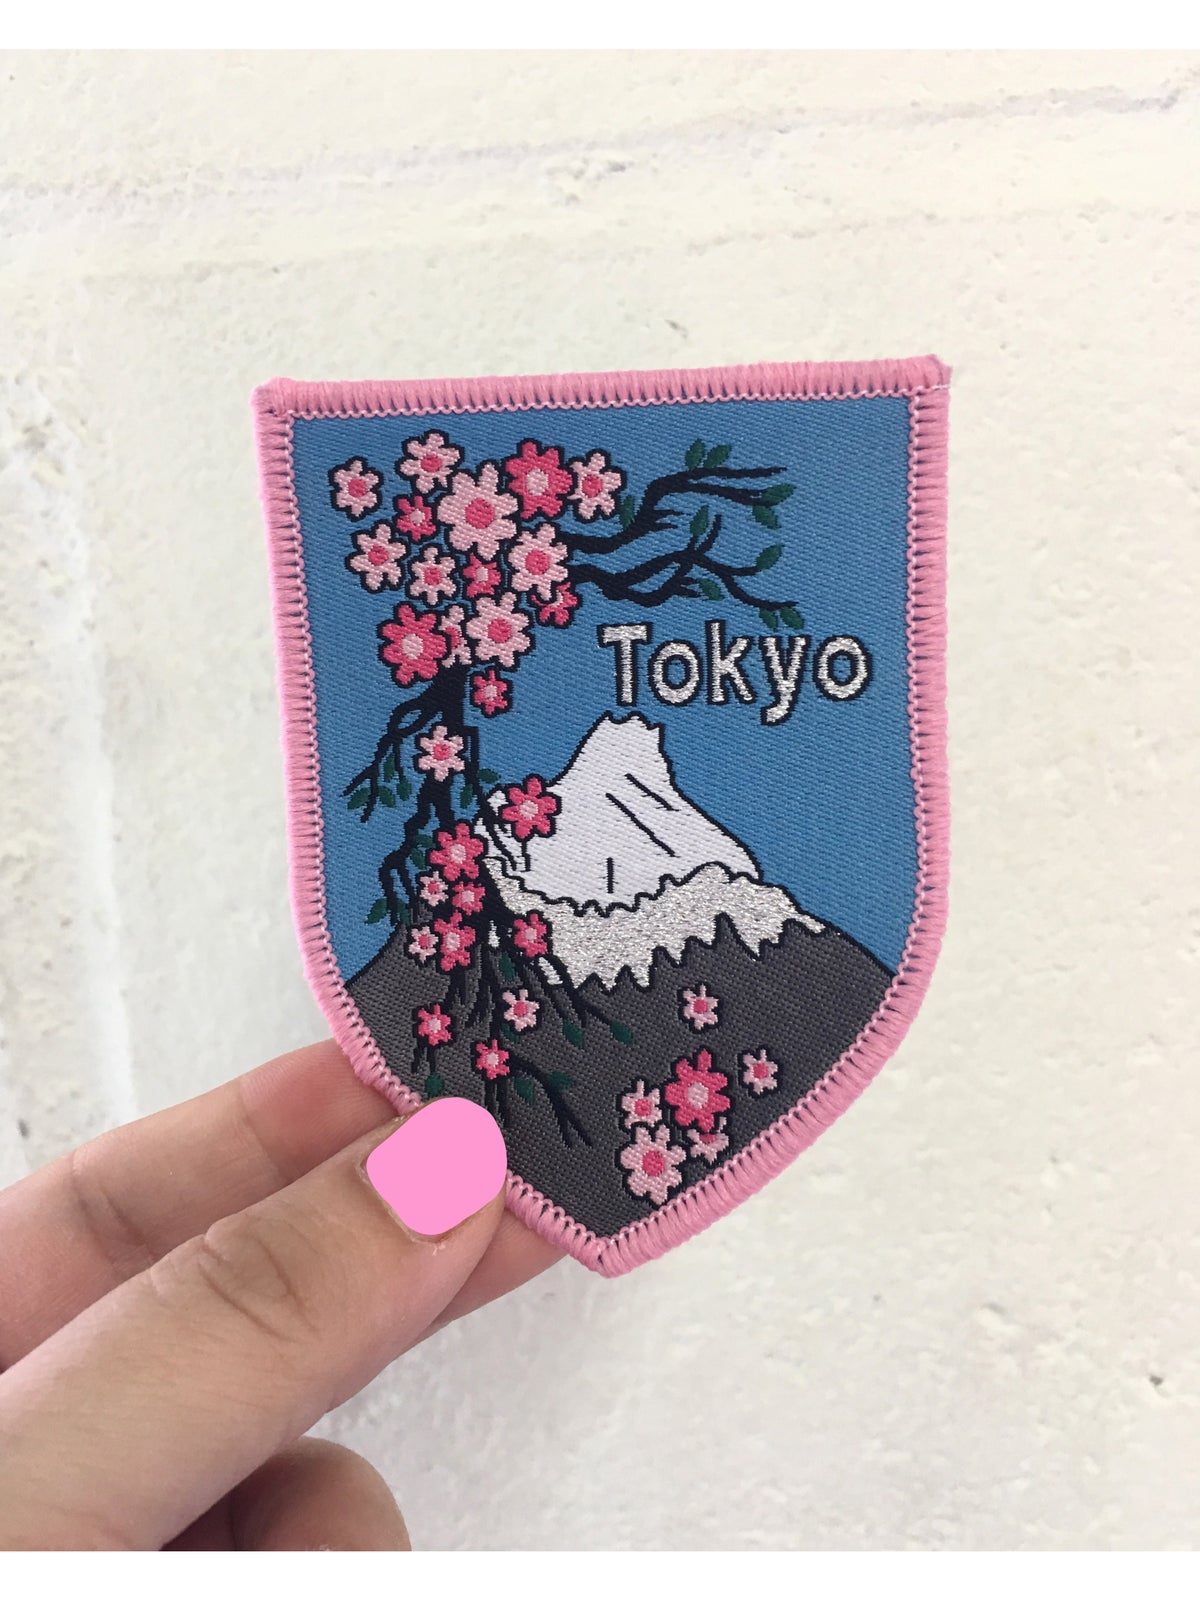 Tokyo Iron on Travel Patch